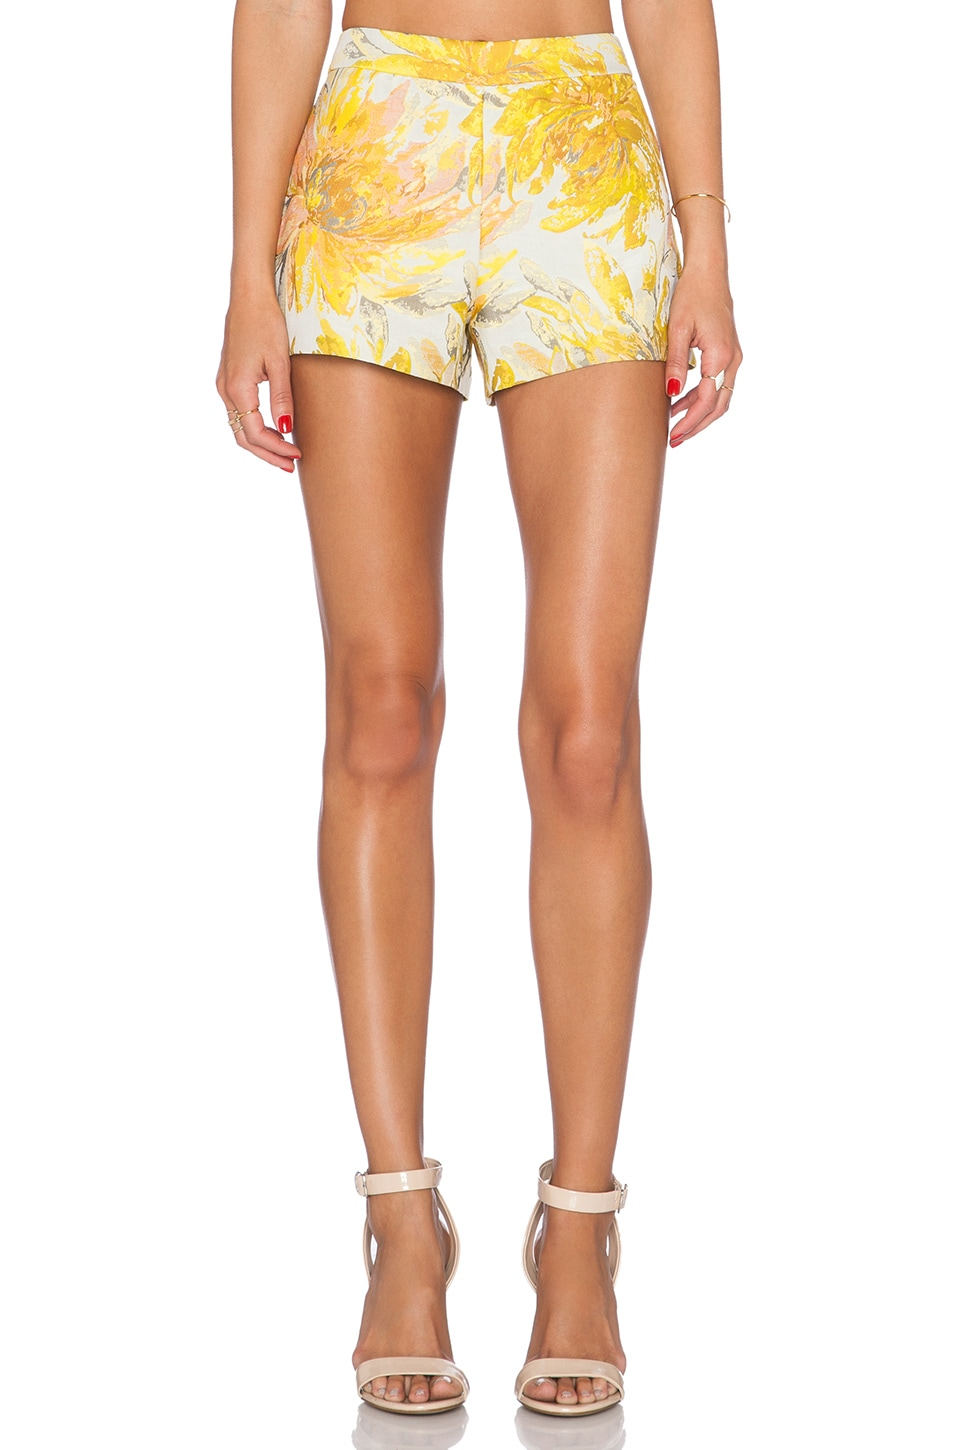 Alice + Olivia Back Zip Short in Yellow Multi